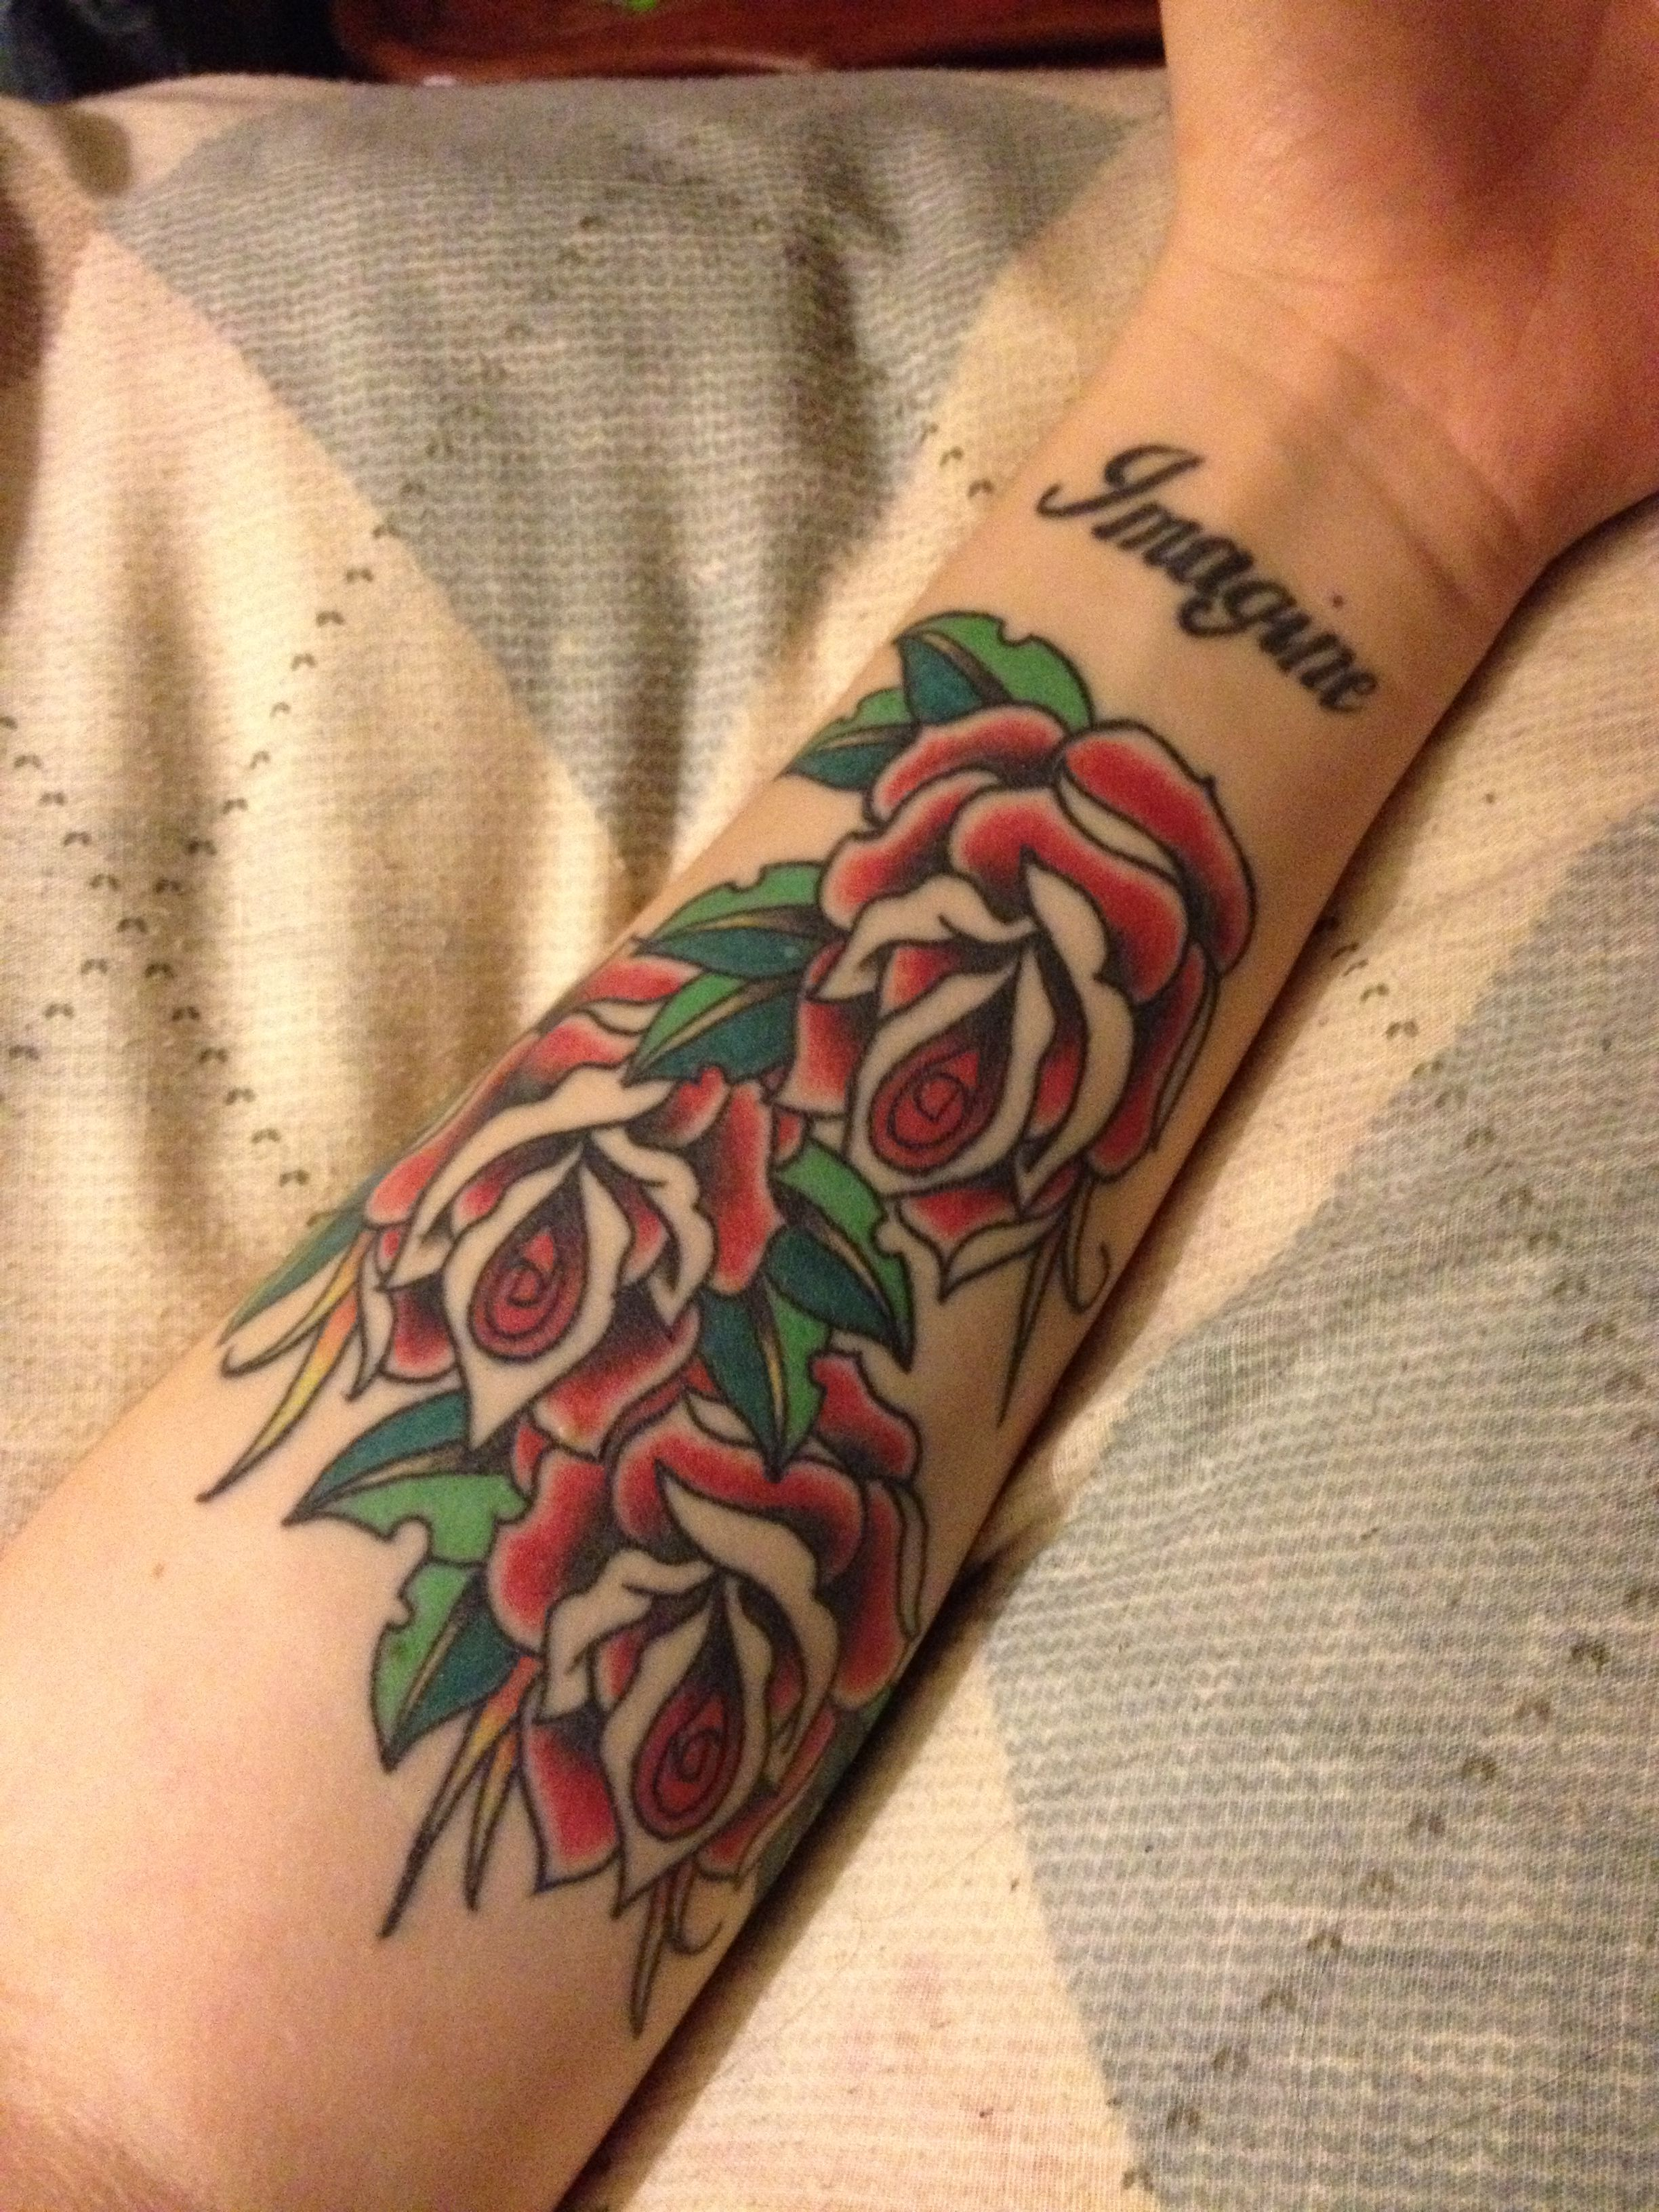 My Rose Tattoo On The Inside Of My Forearm And The Word Imagine